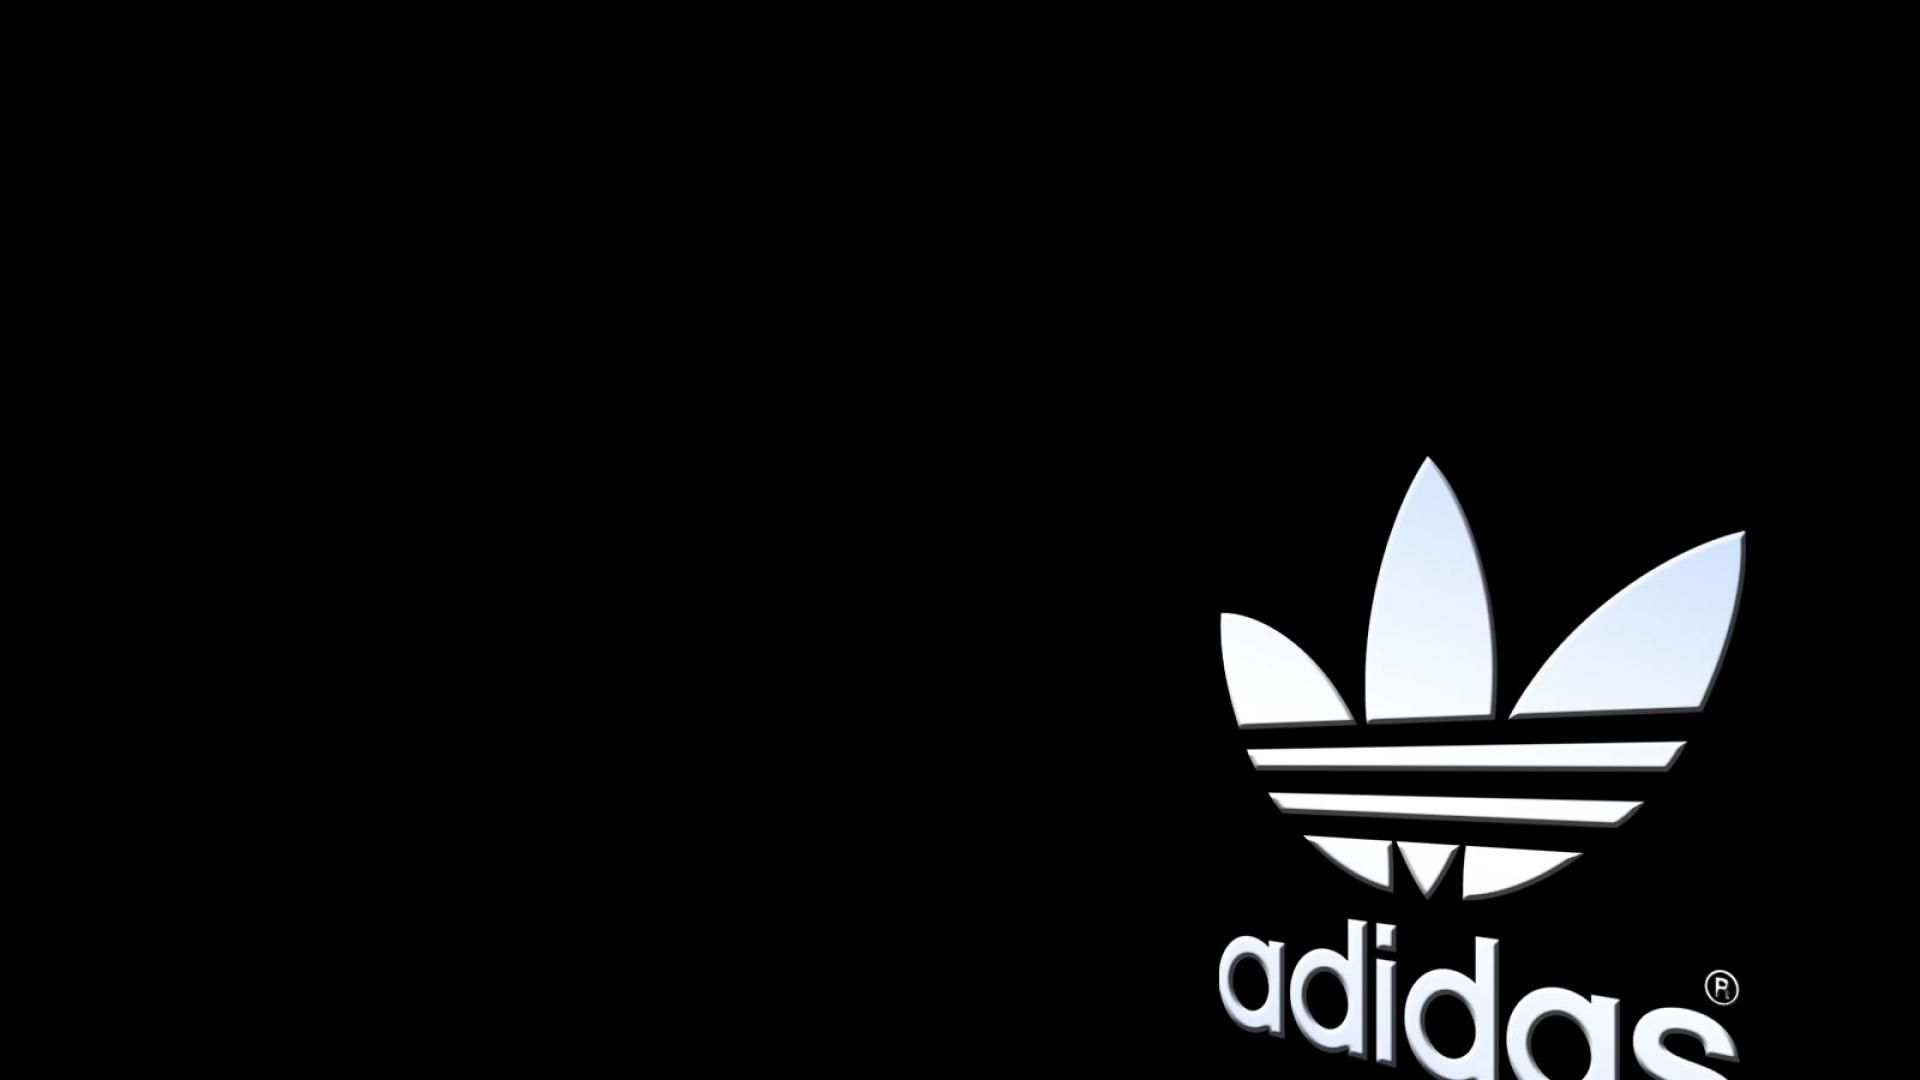 The Theme Of The Adidas